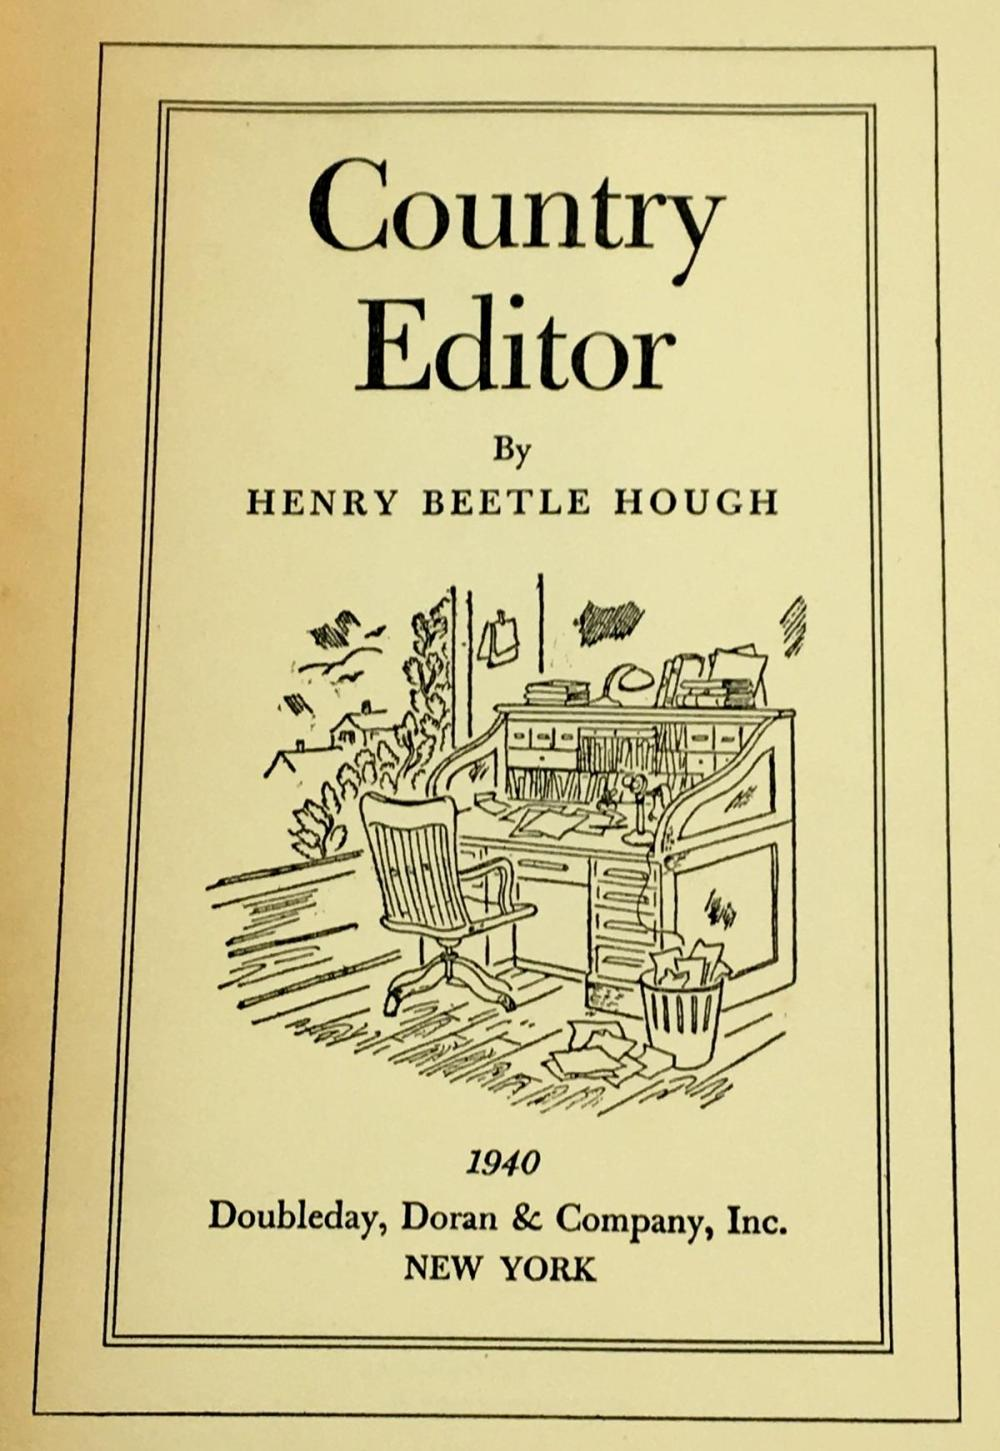 1940 Country Editor by Henry Beetle Hough SIGNED FIRST EDITION